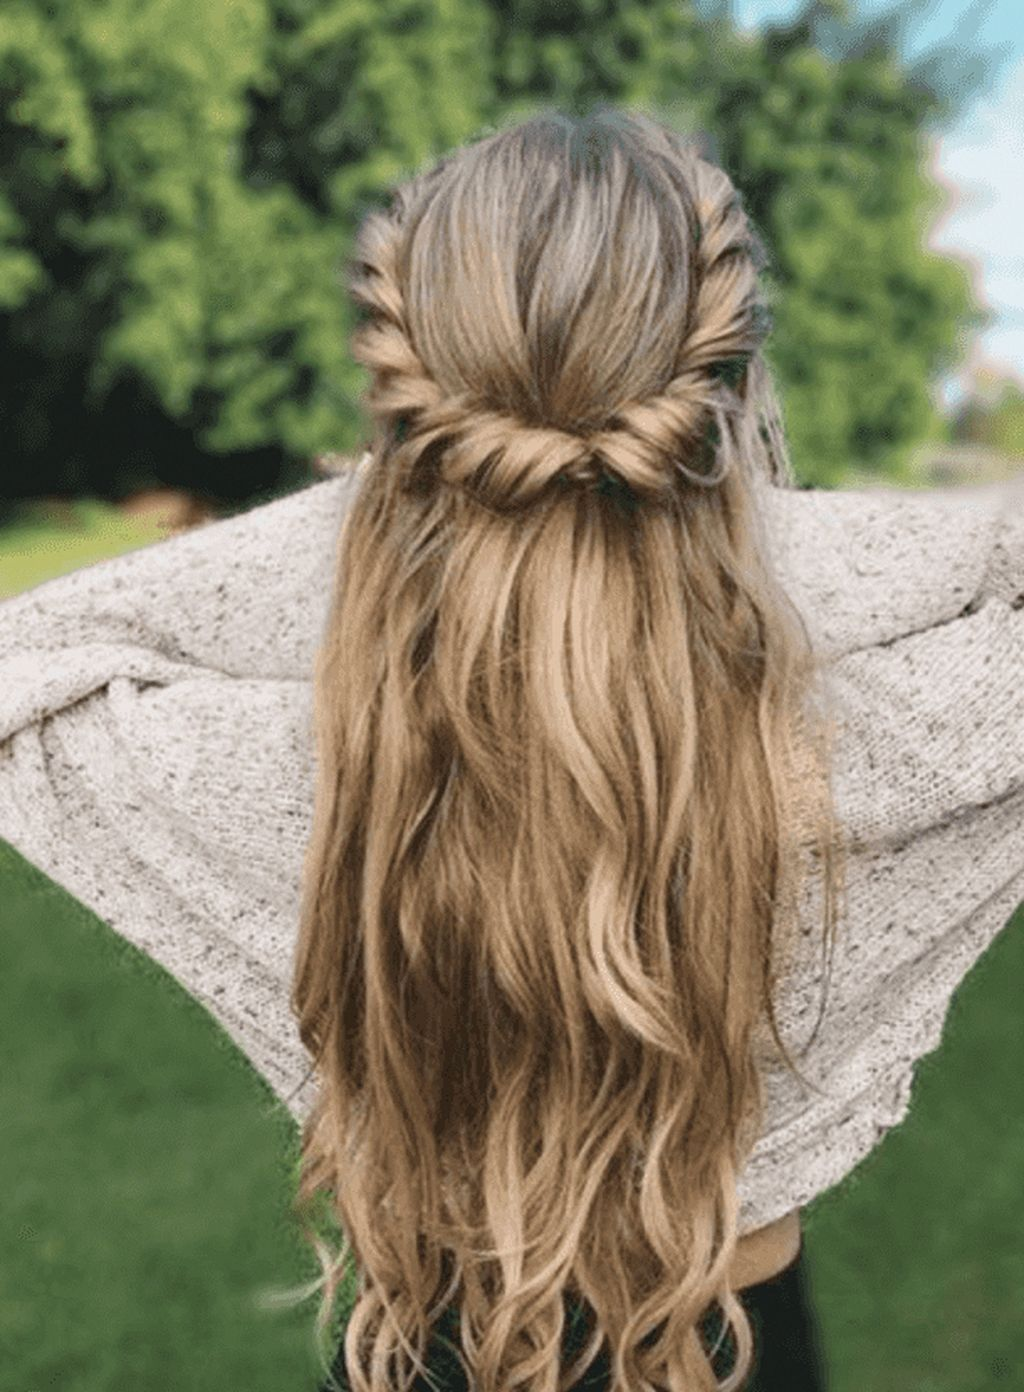 30 Excellent Summer Hairstyles And Haircuts Ideas For Women To Try Easy Hairstyles For Long Hair Summer Hairstyles Easy Summer Hairstyles